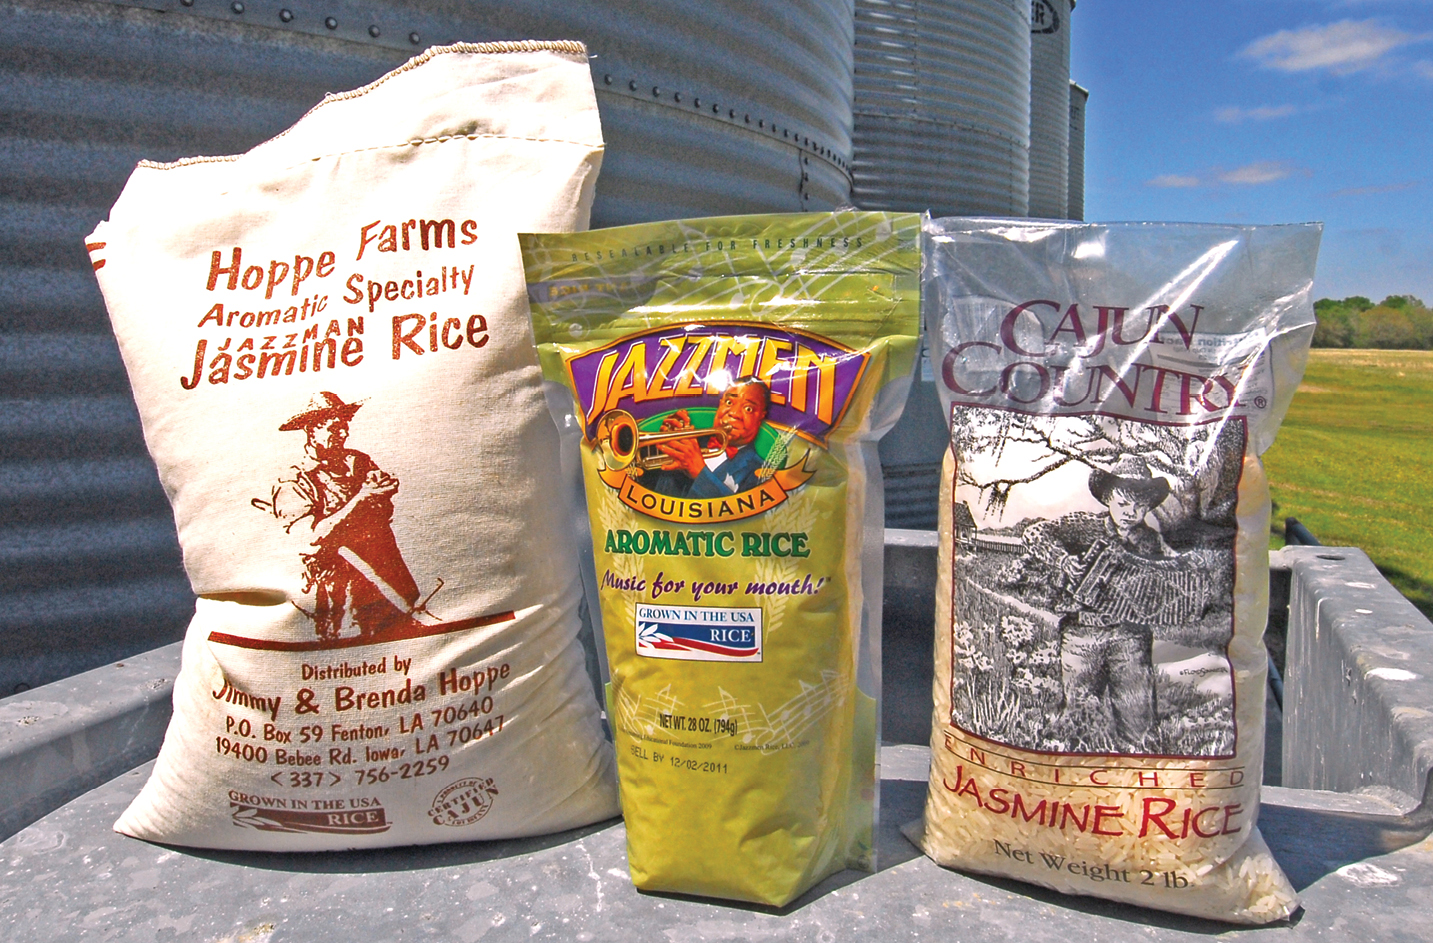 Jazzman competes well in aromatic rice market